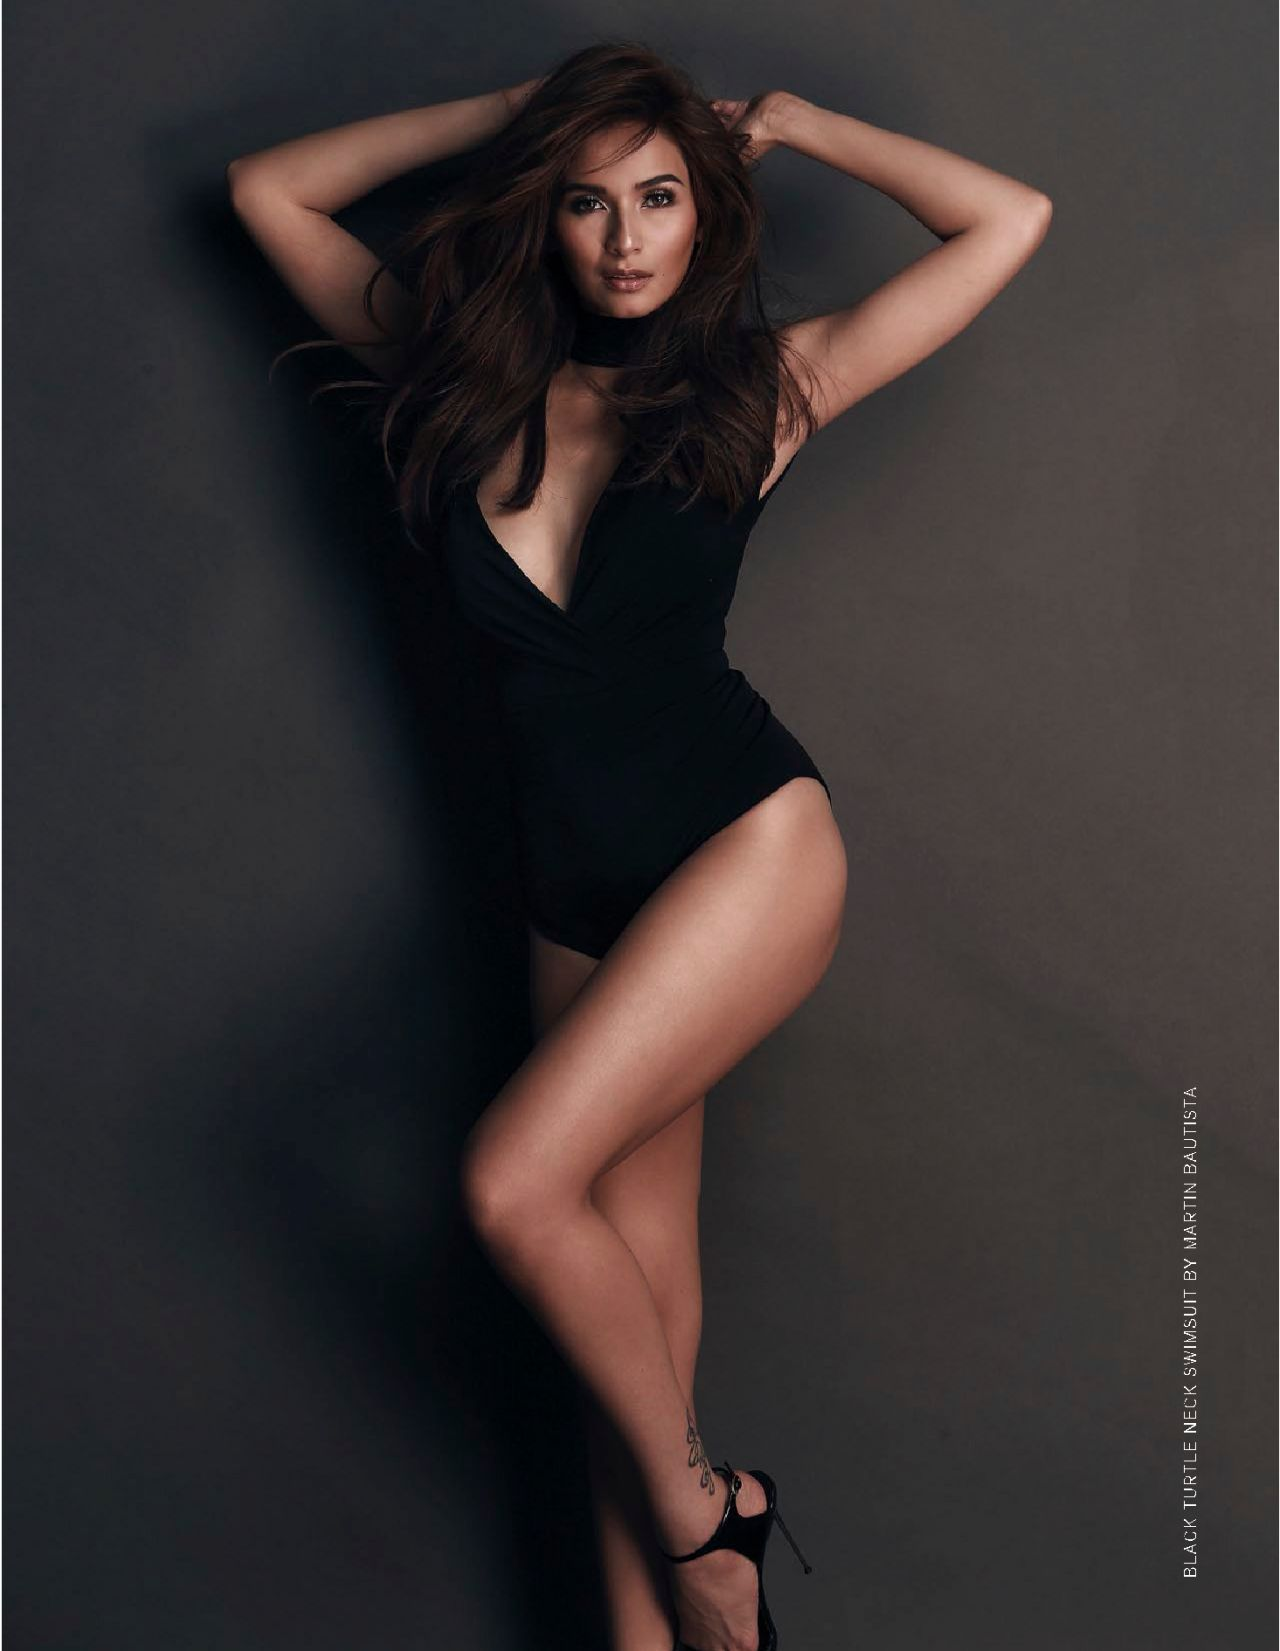 nude photo jennylyn mercado